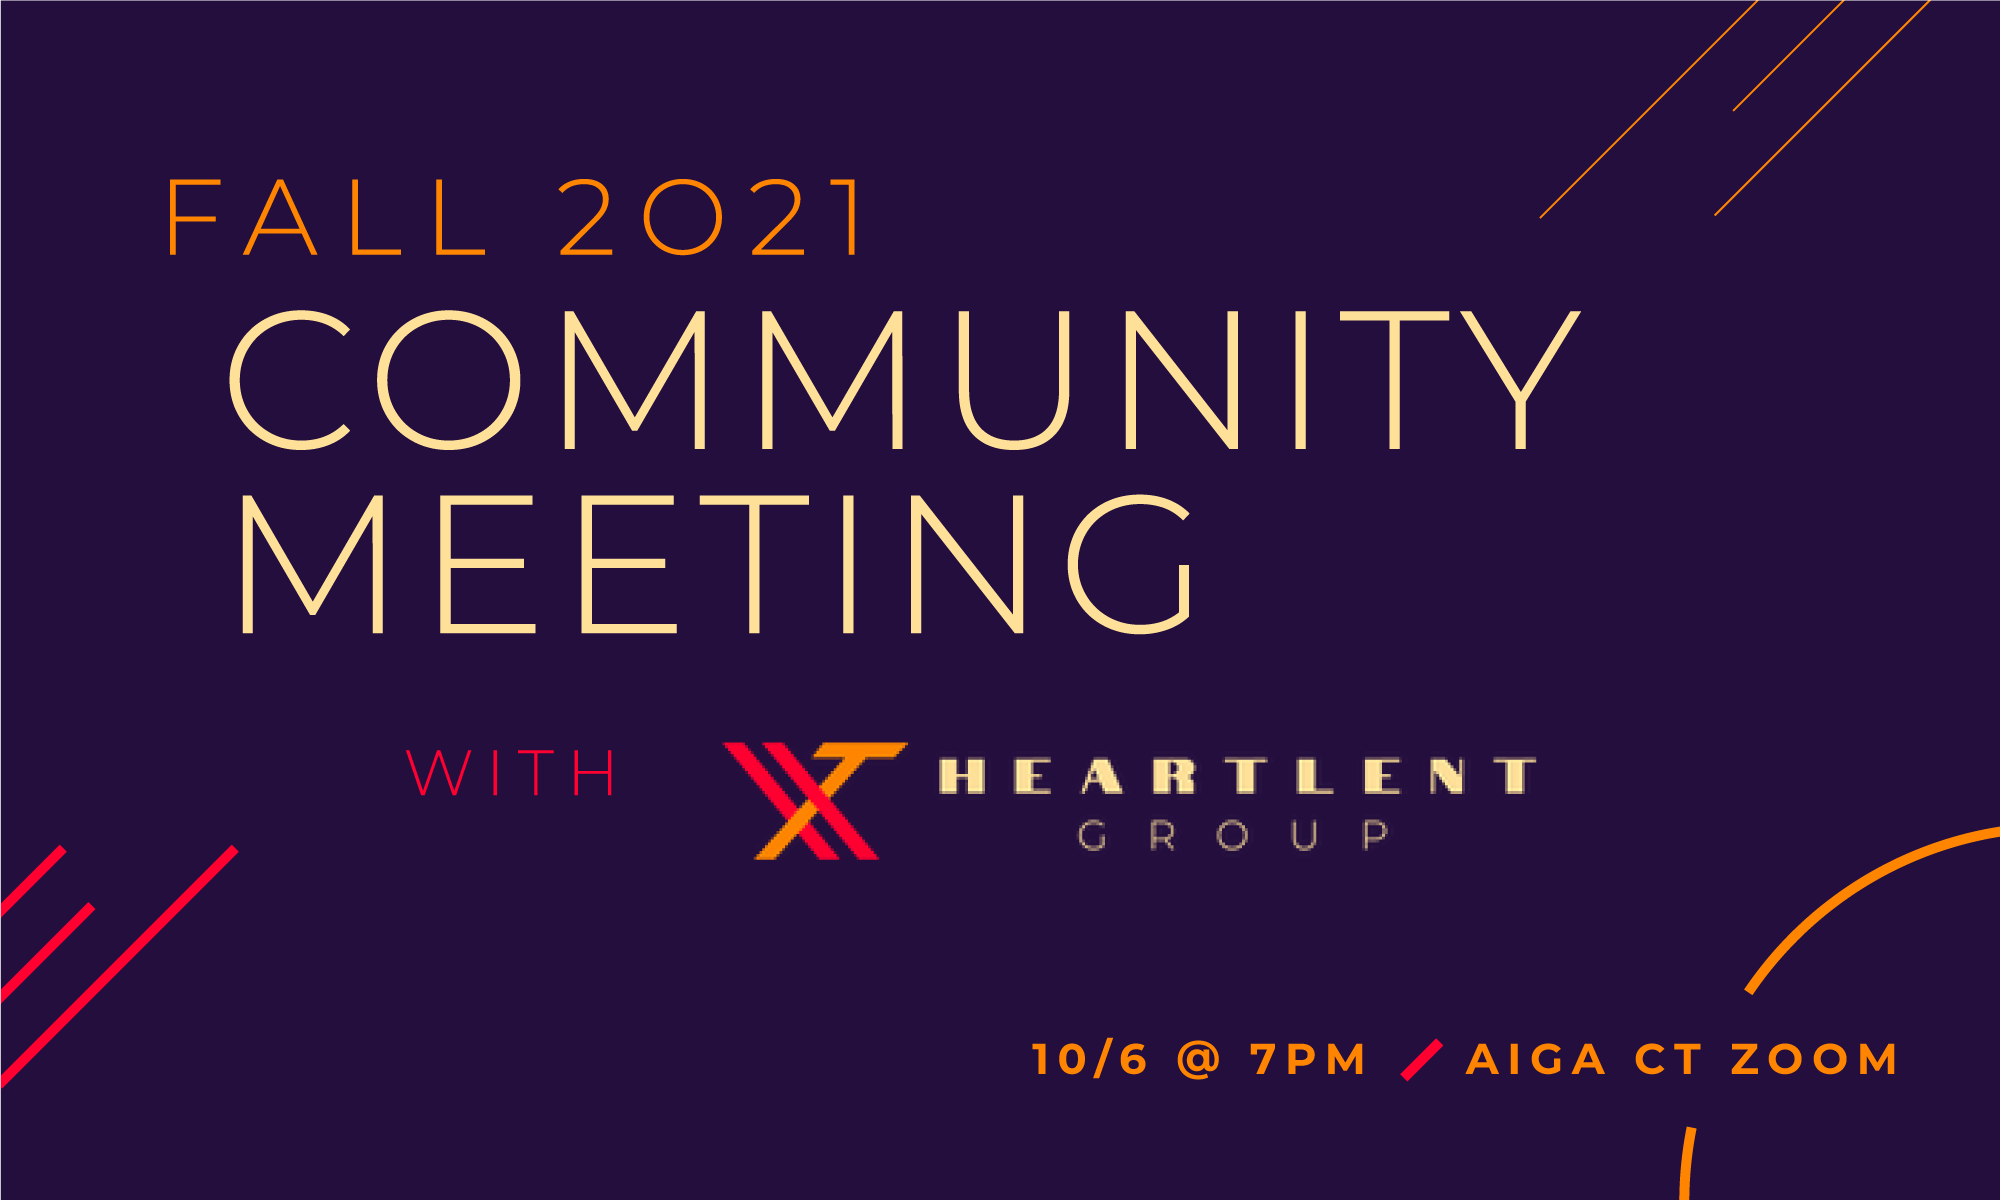 Fall 2021 Community Meeting with HEARTLENT Group